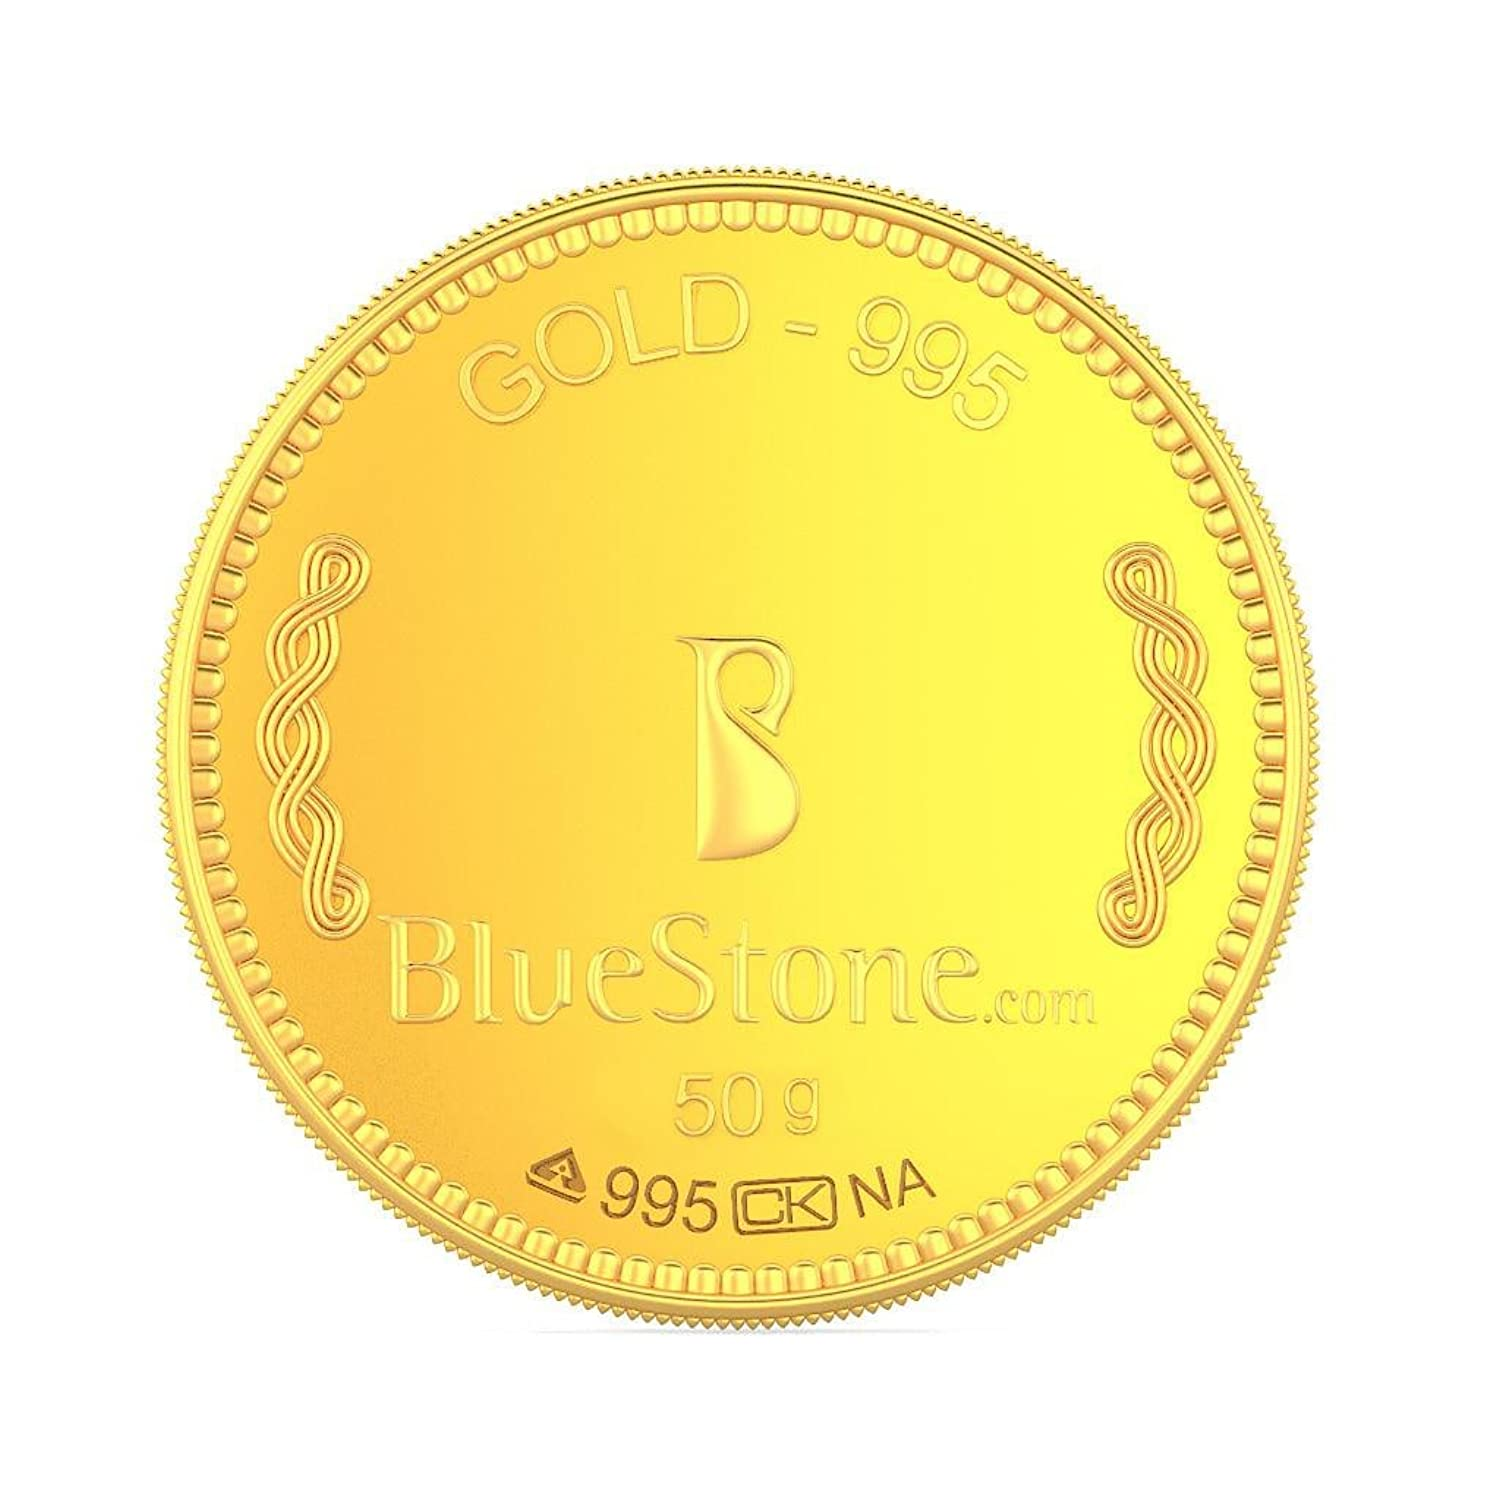 BlueStone BIS Hallmarked 50 grams 24k (995) Yellow Gold Precious Coin